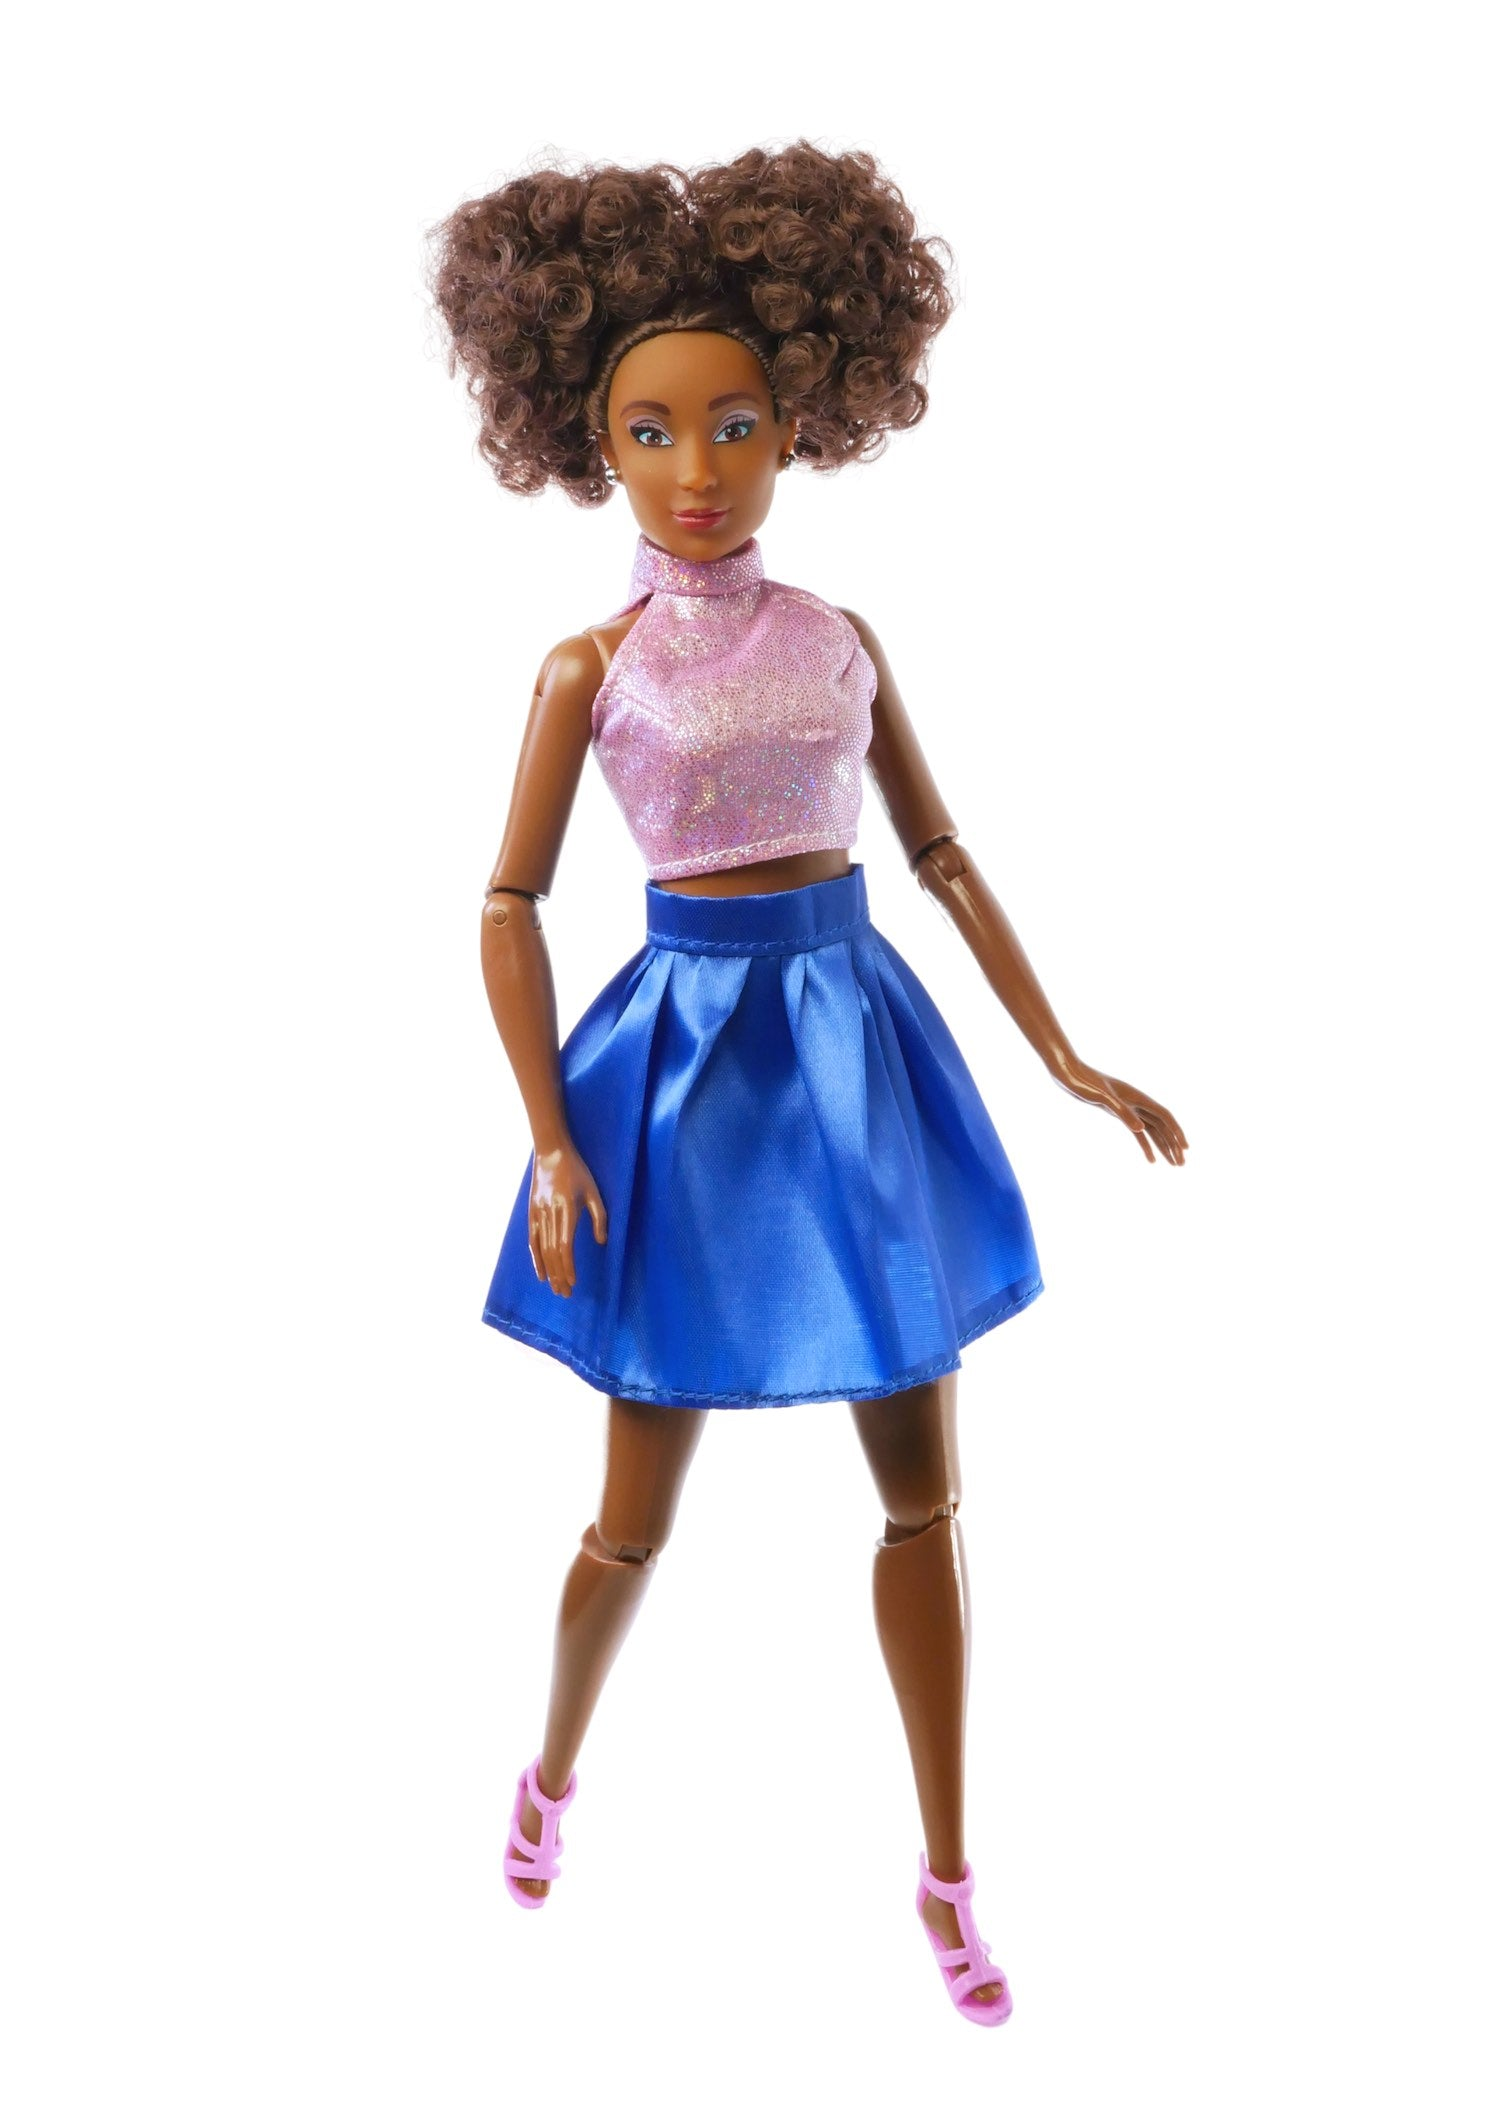 brown curly hair fashion doll wearing pink top and blue skirt